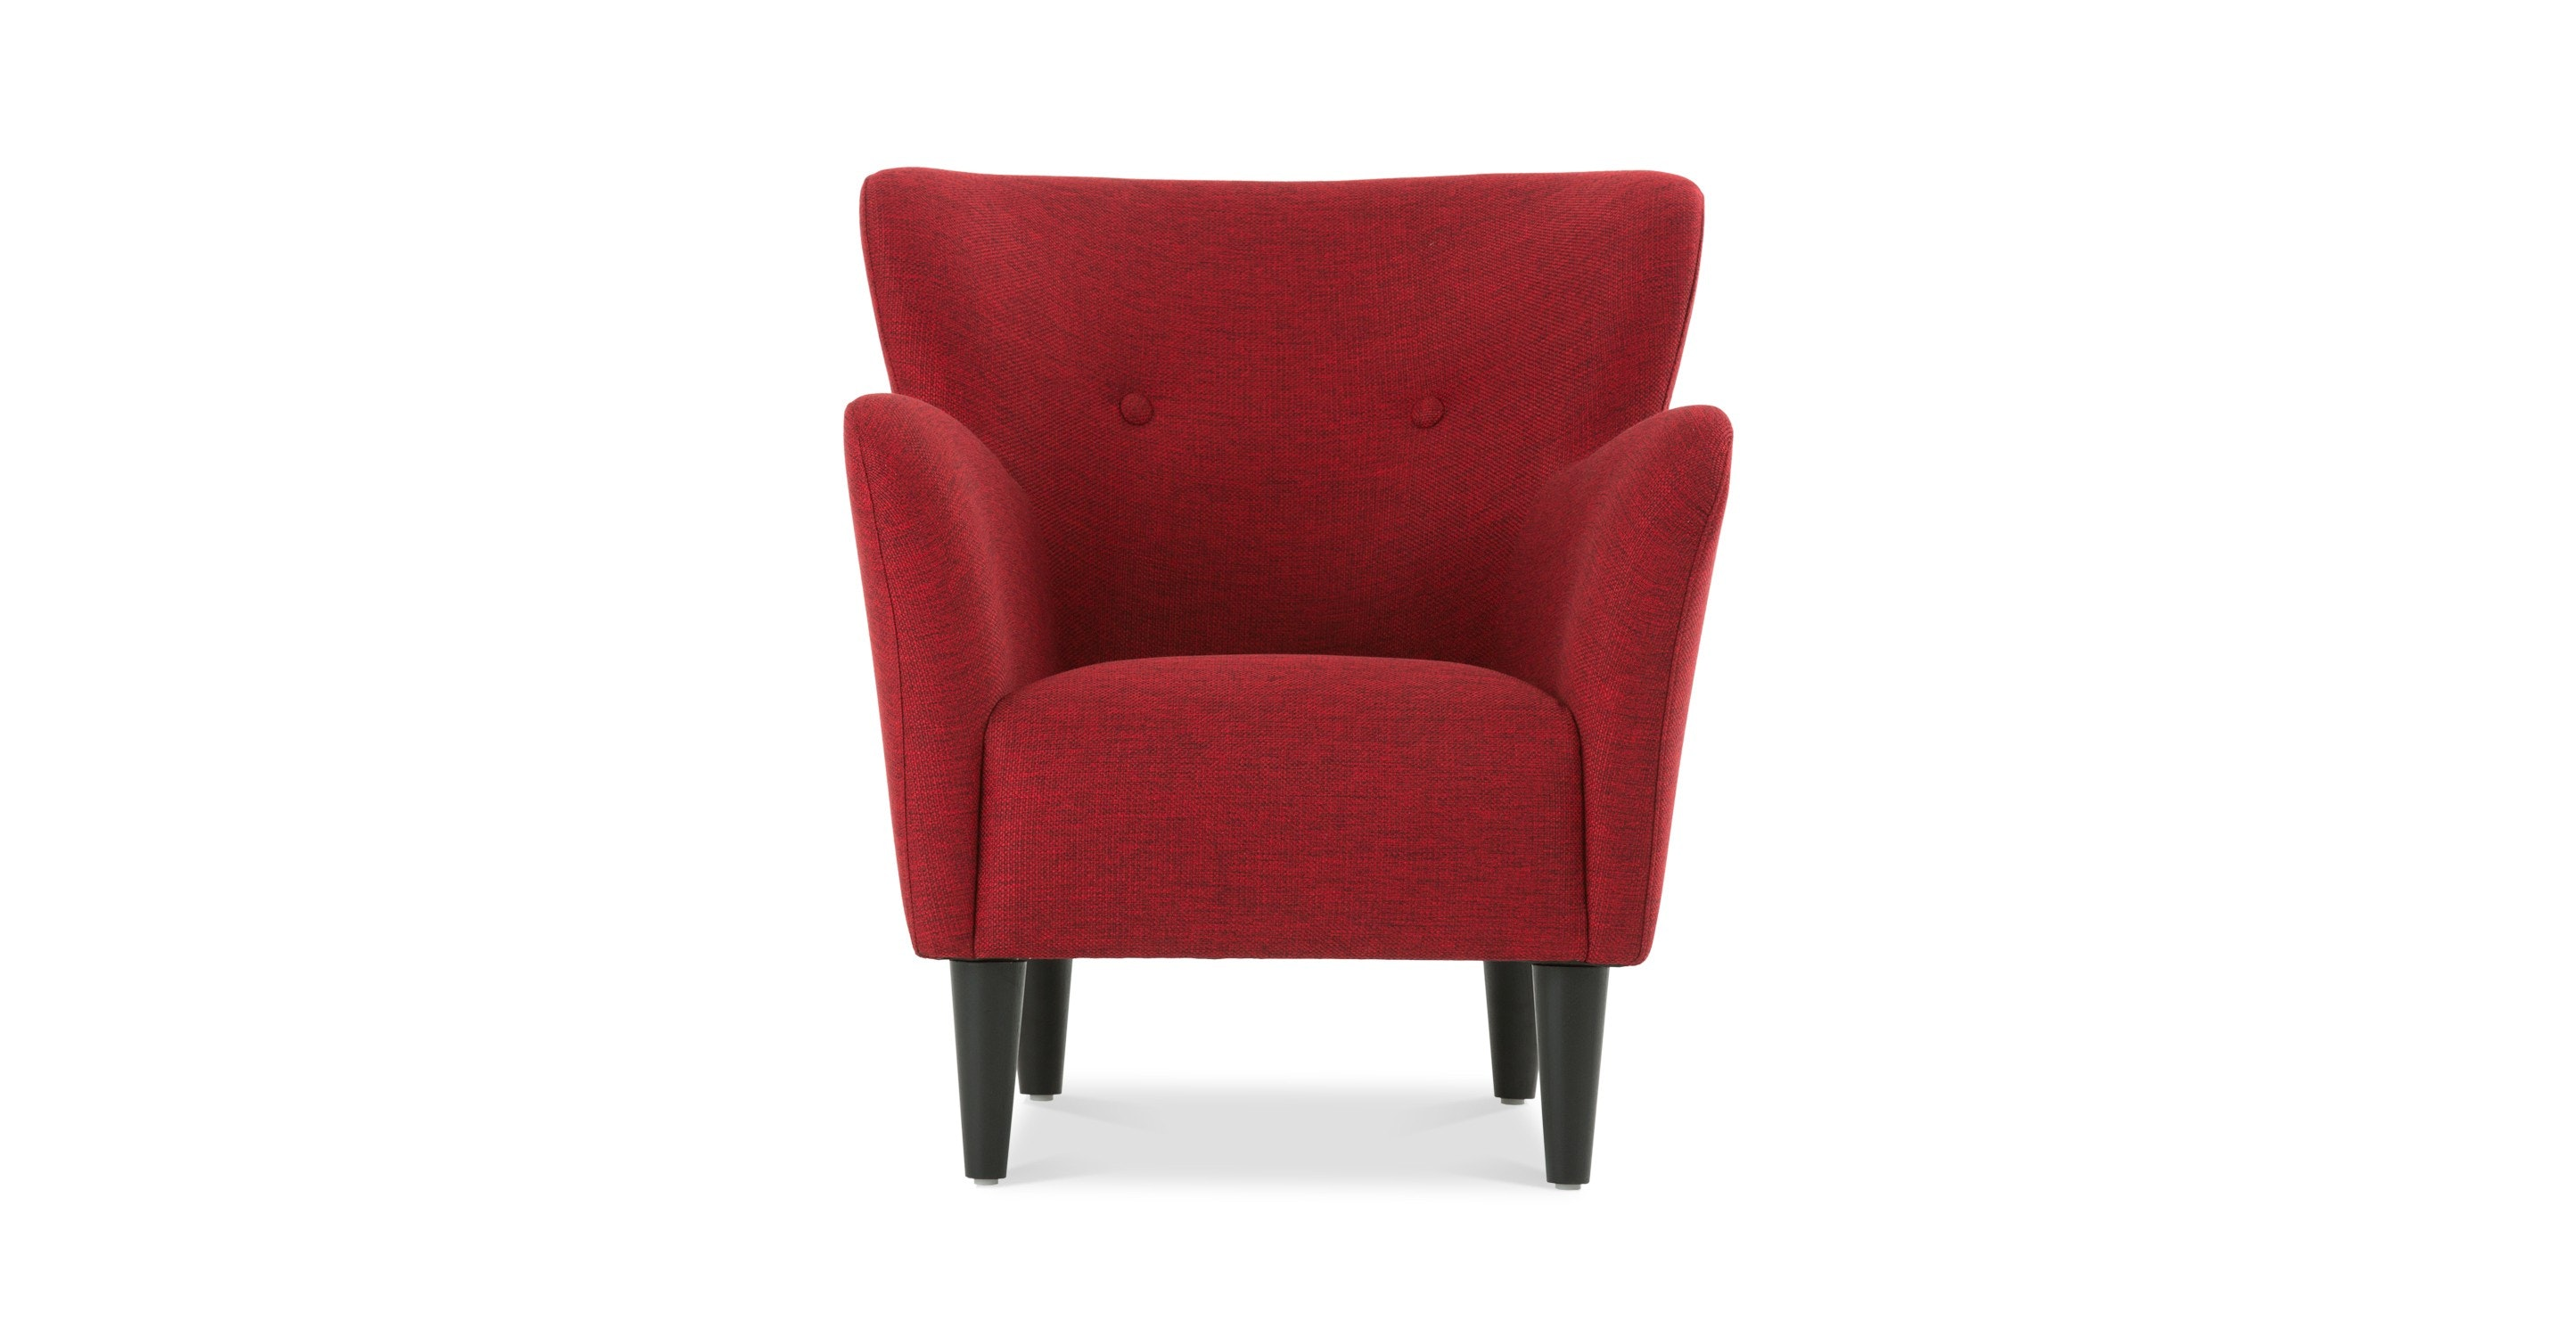 Happy Picasso Red Armchair Lounge Chairs Article